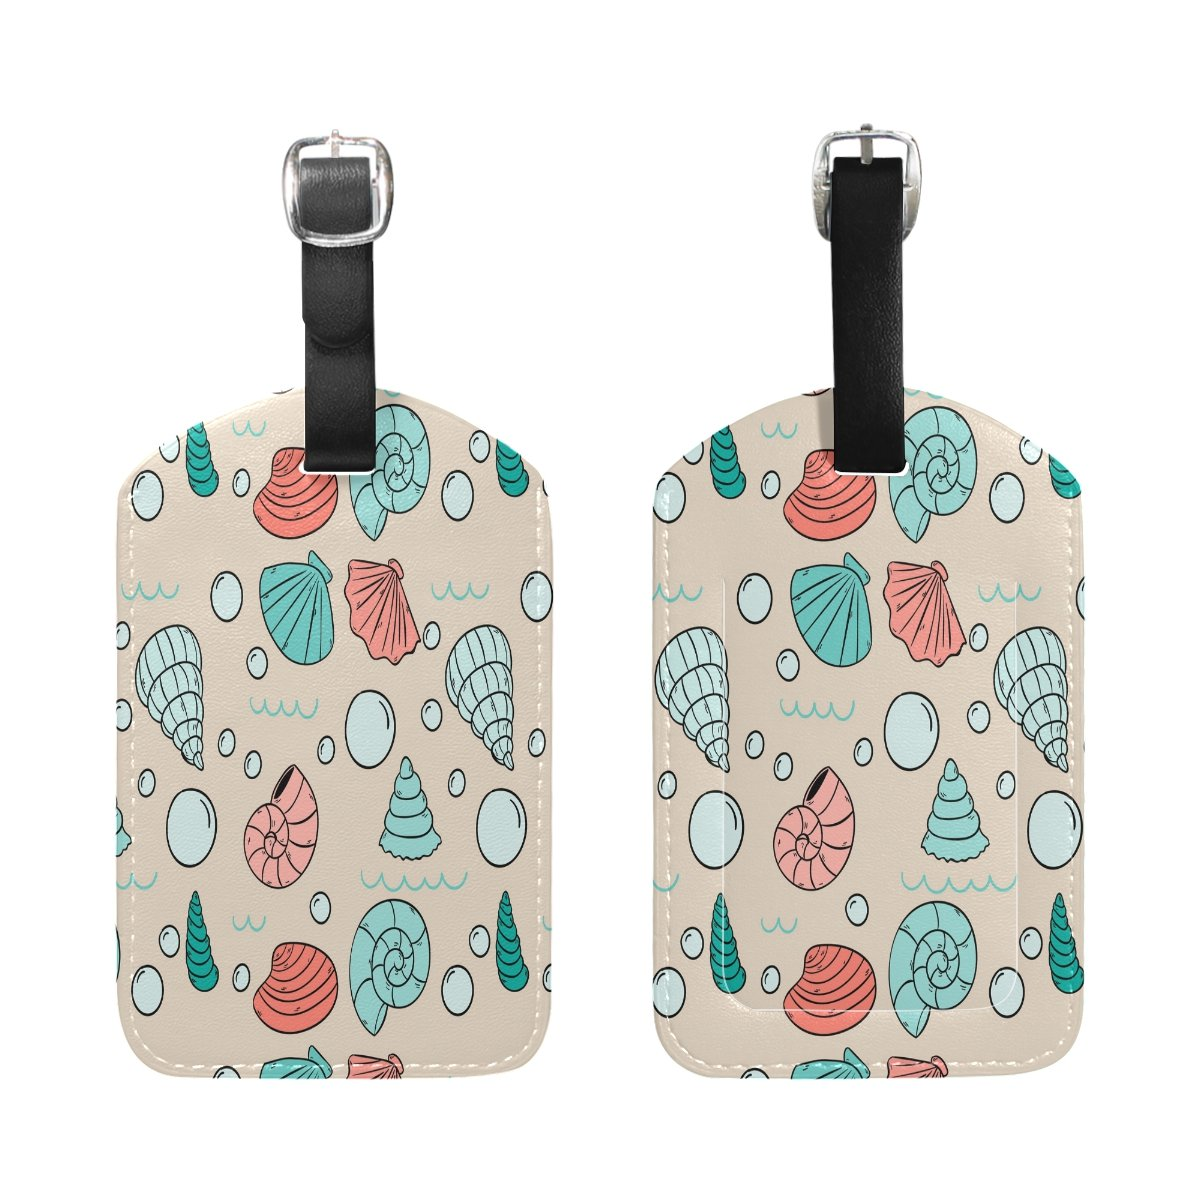 1Pcs Saobao Travel Luggage Tag Snails And Shells PU Leather Baggage Suitcase Travel ID Bag Tag